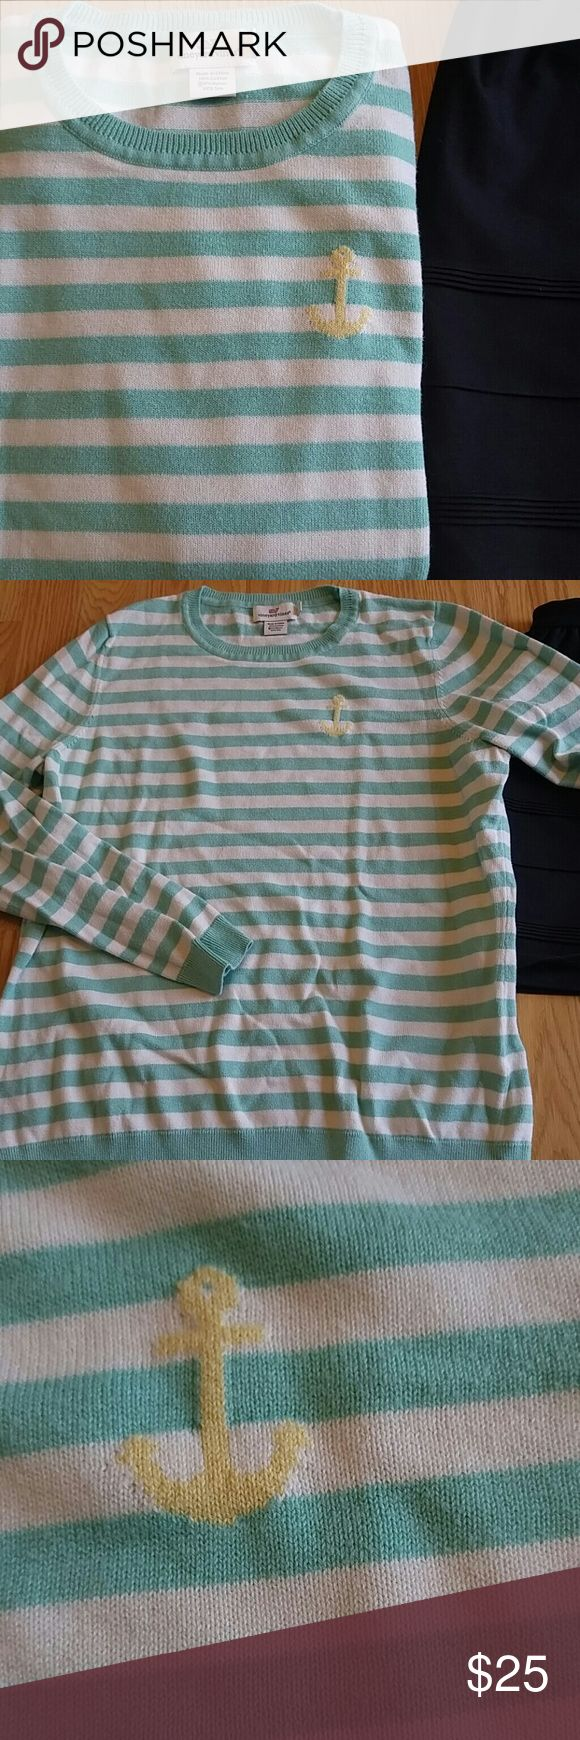 Vineyard Vines Aqua Stripe Anchor Sweater L Super cute nautical sweater with aqua and white stripes and yellow anchor! Adorable layering piece for unpredictable spring weather! Good used condition; Make me an offer or bundle to save! Vineyard Vines Sweaters Crew & Scoop Necks